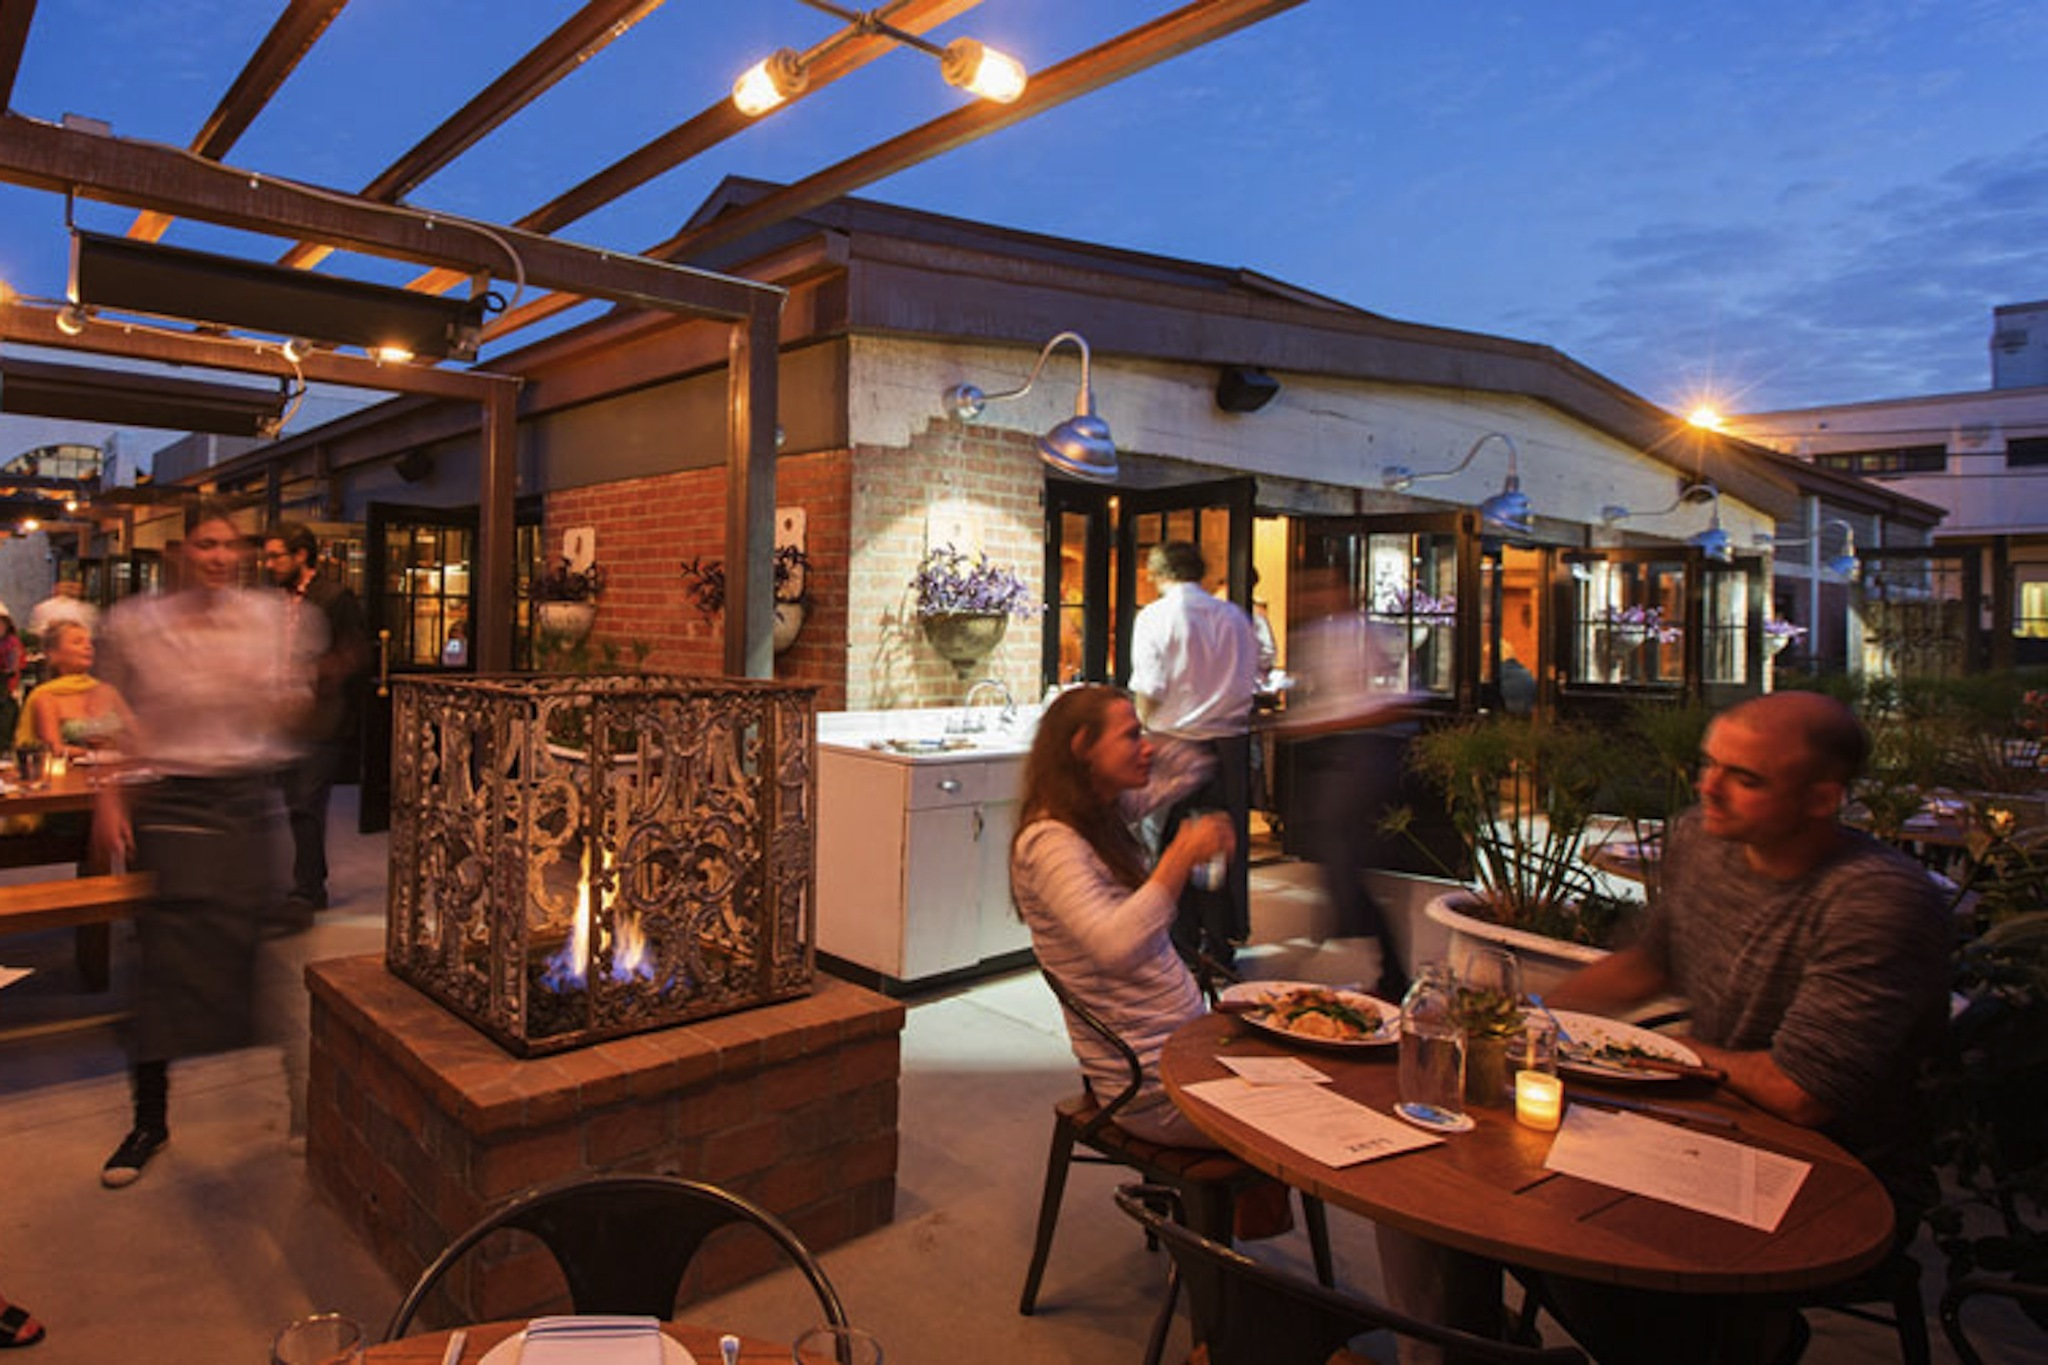 Food And Drink: The 10 Best Restaurants In Santa Barbara For Delectable Food